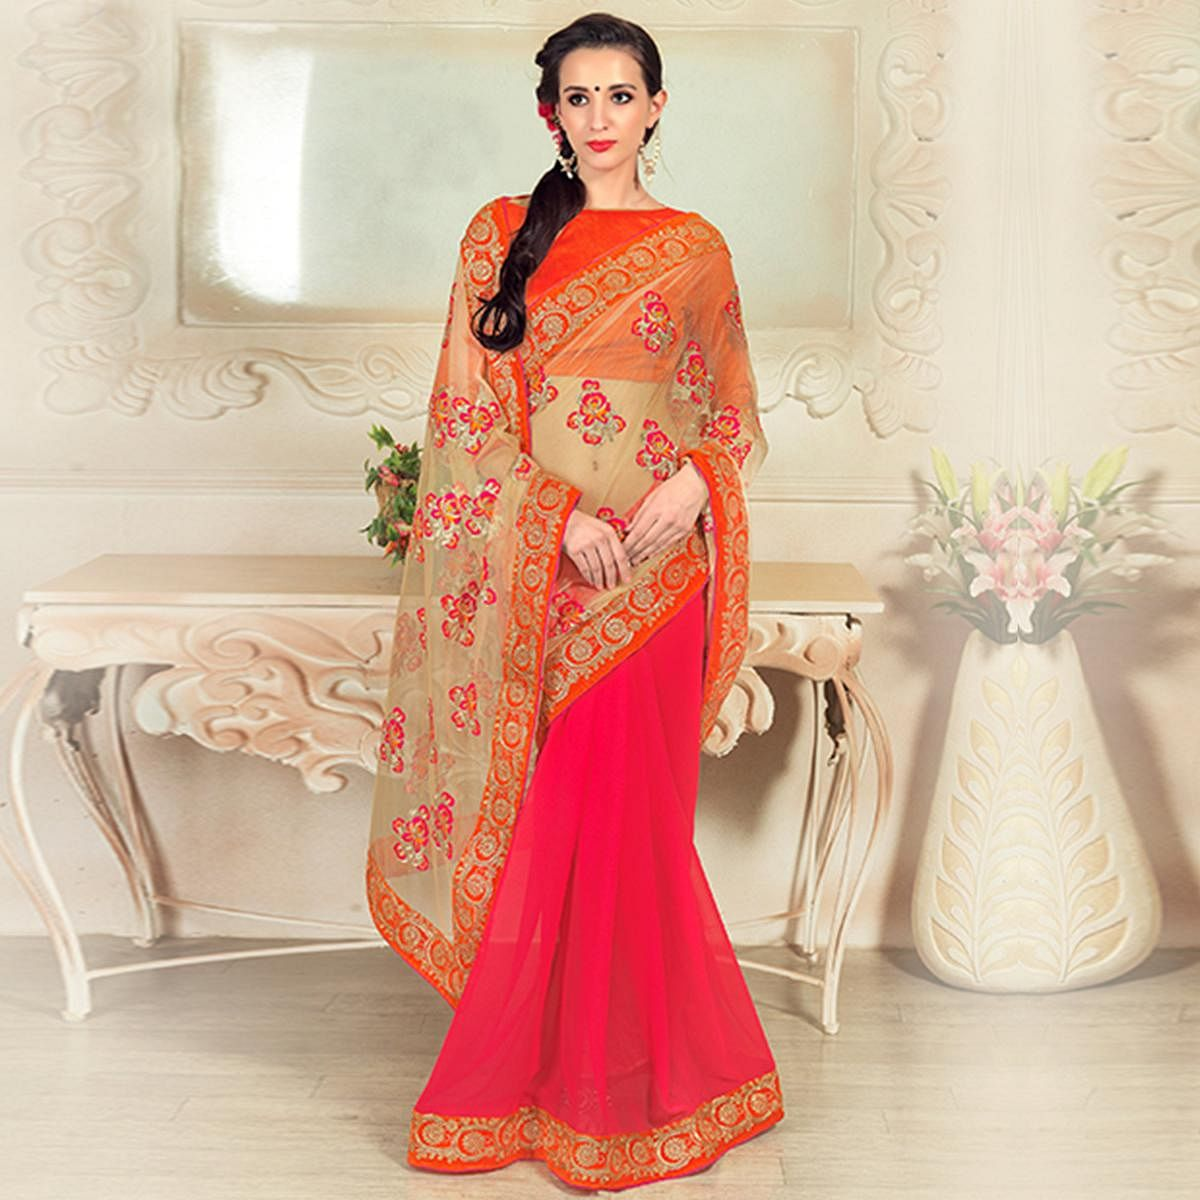 Dazzling Pink-Beige Colored Party Wear Embroidered Net & Georgette Saree